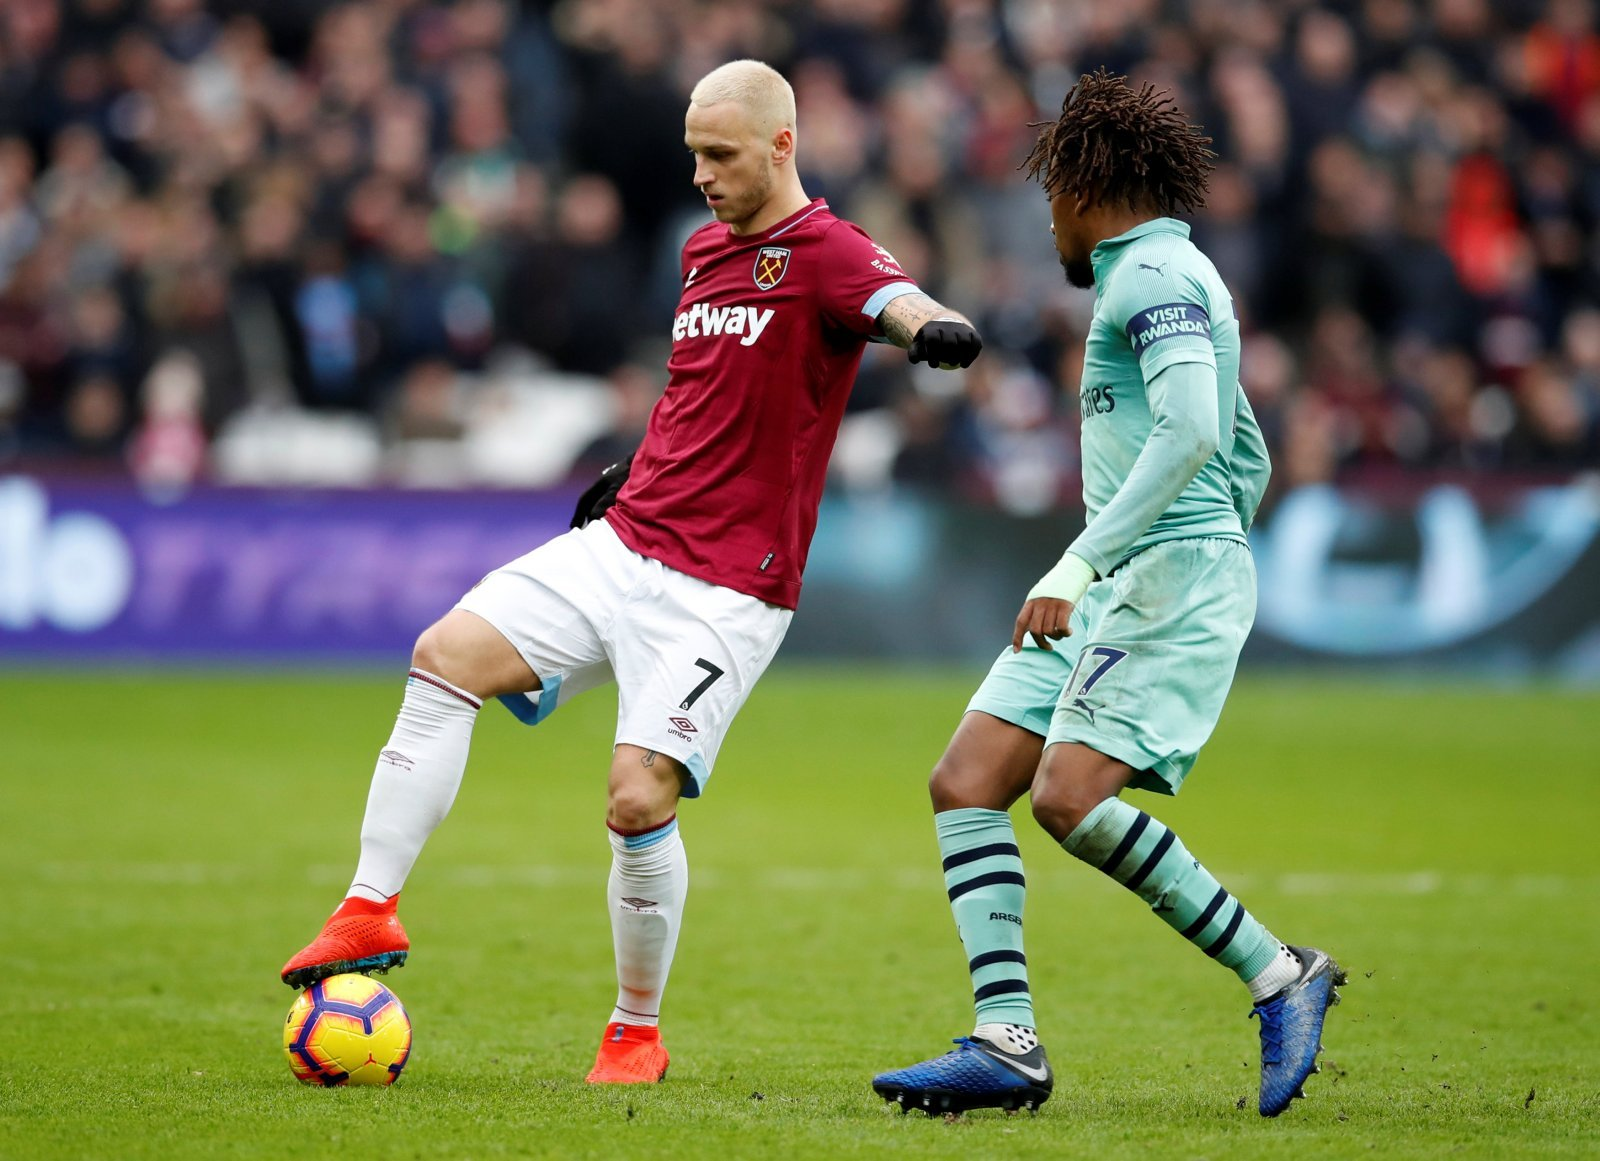 West Ham team news: Marko Arnautovic in contention to return against Crystal Palace